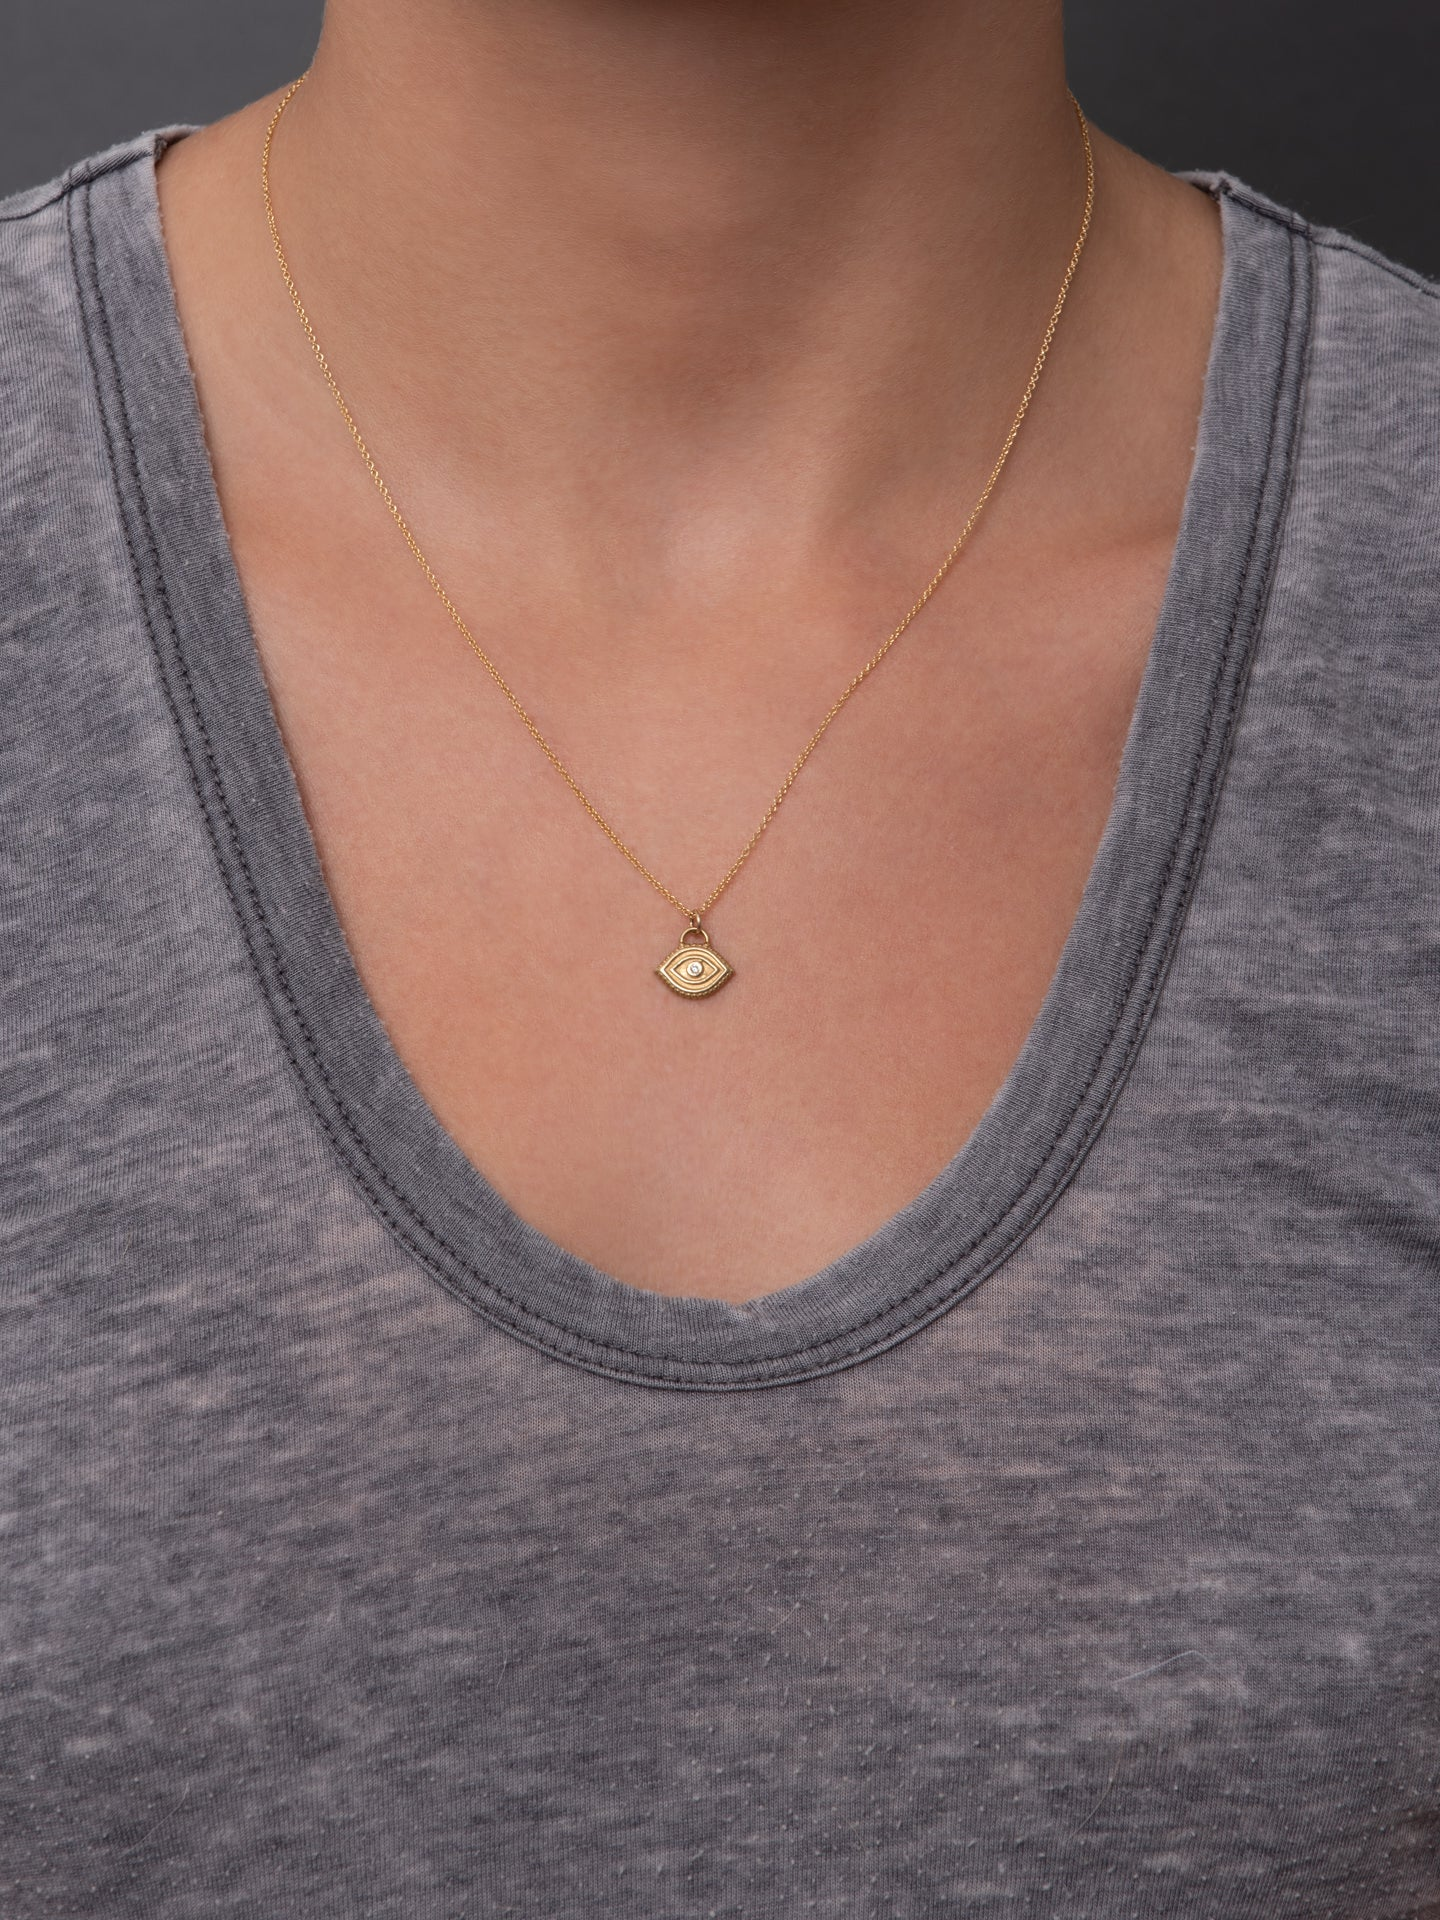 "Seva Necklace ""one love"""